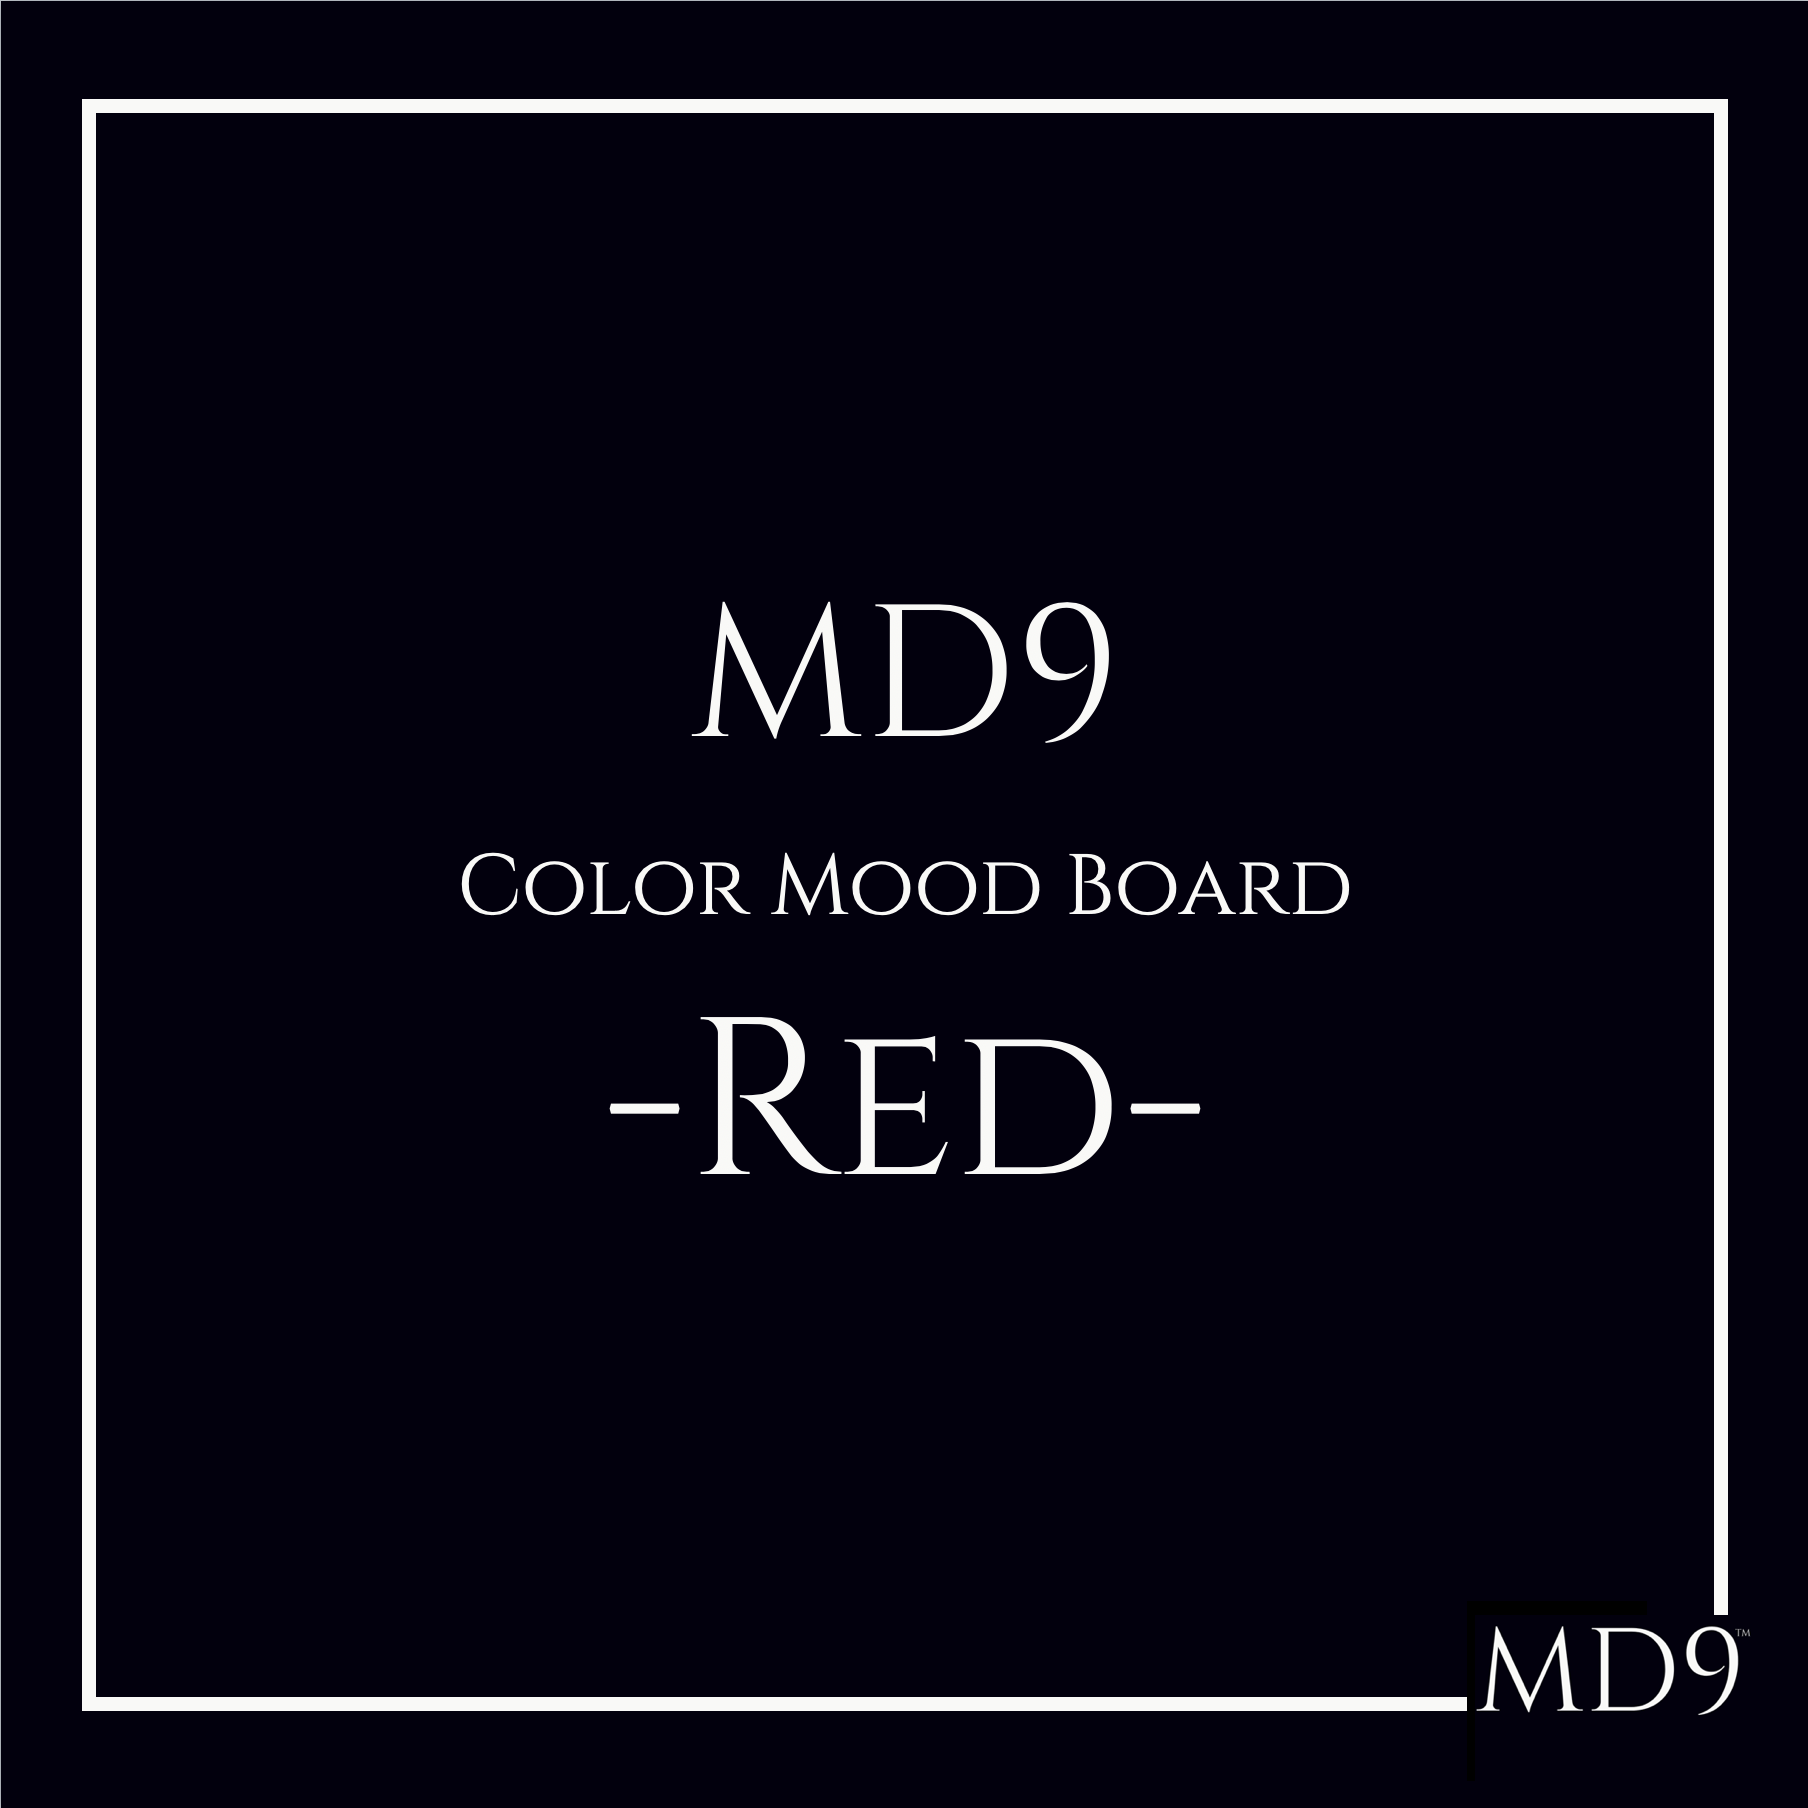 MD9's Colors Mood Board – Red